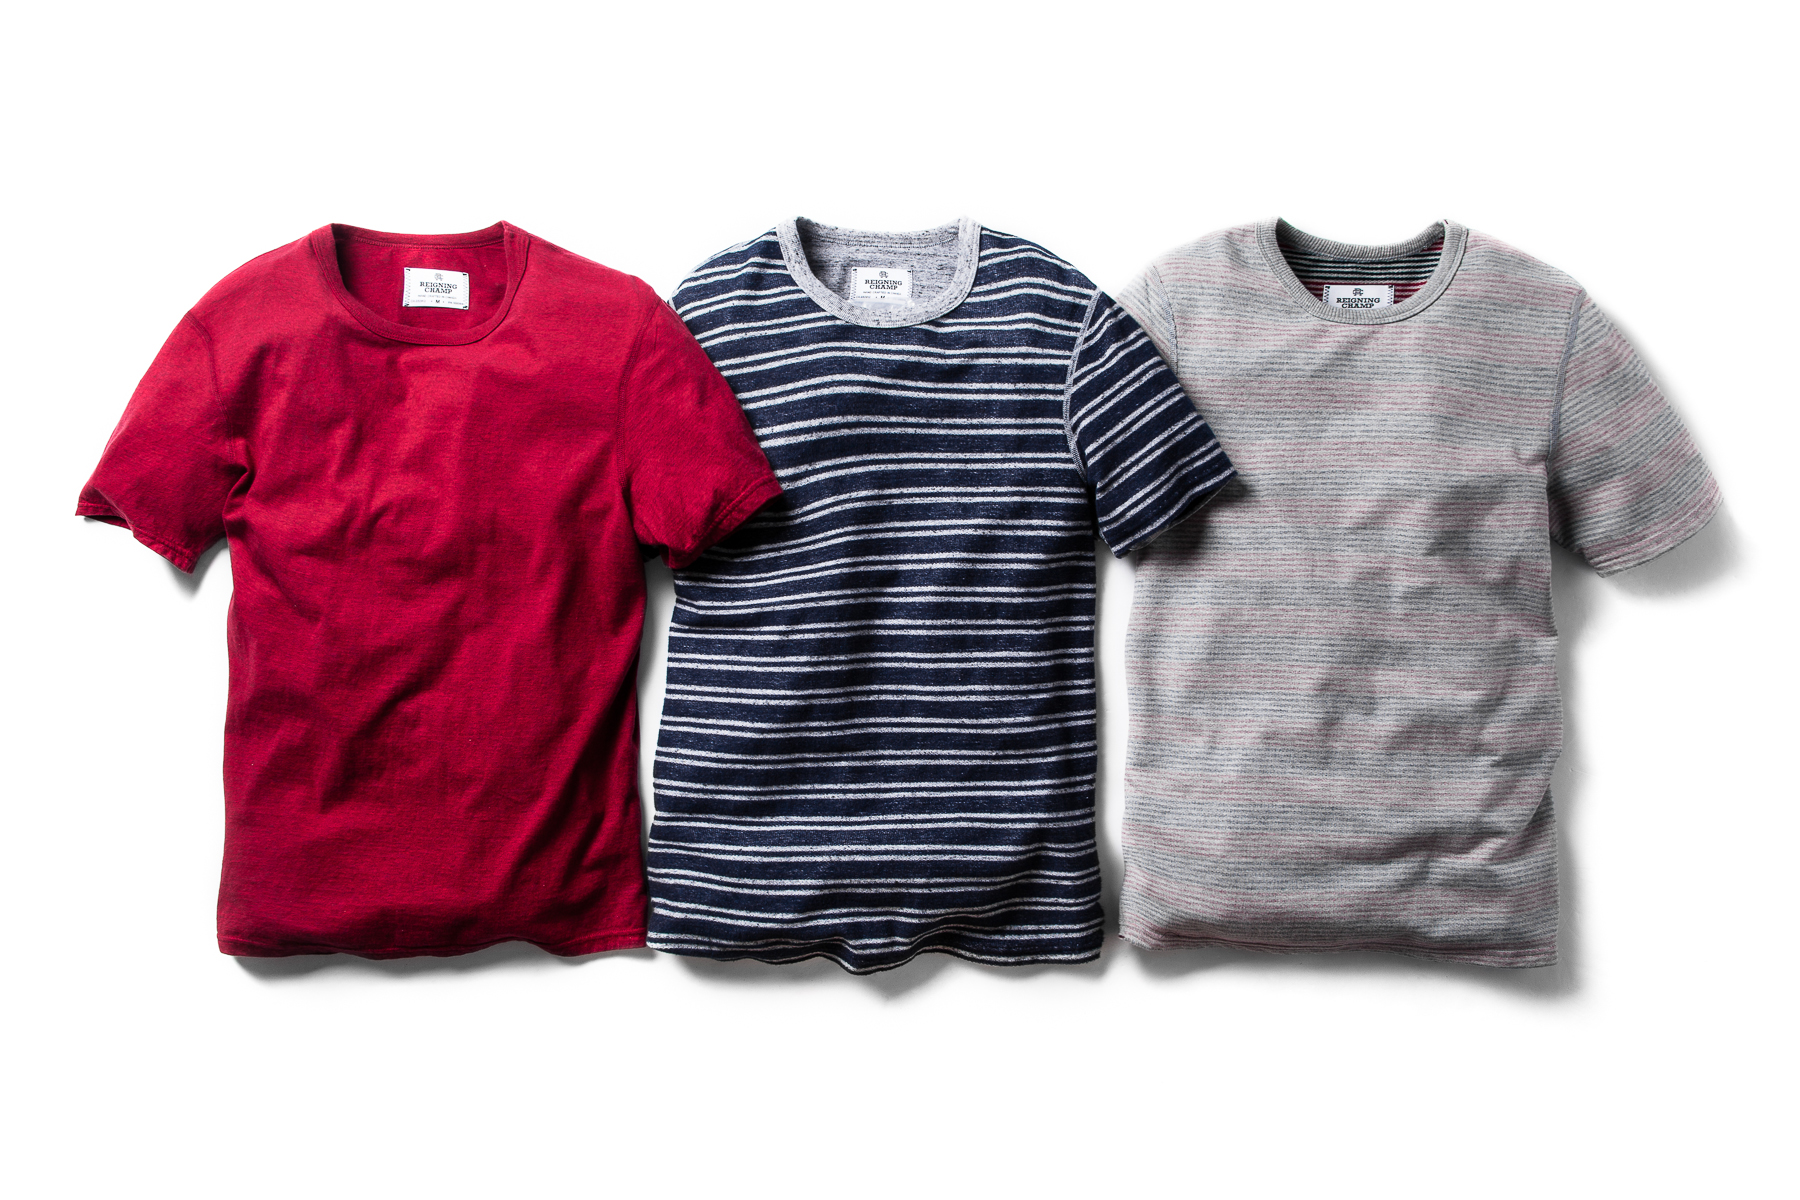 Reigning Champ 2014 Spring/Summer T-Shirts